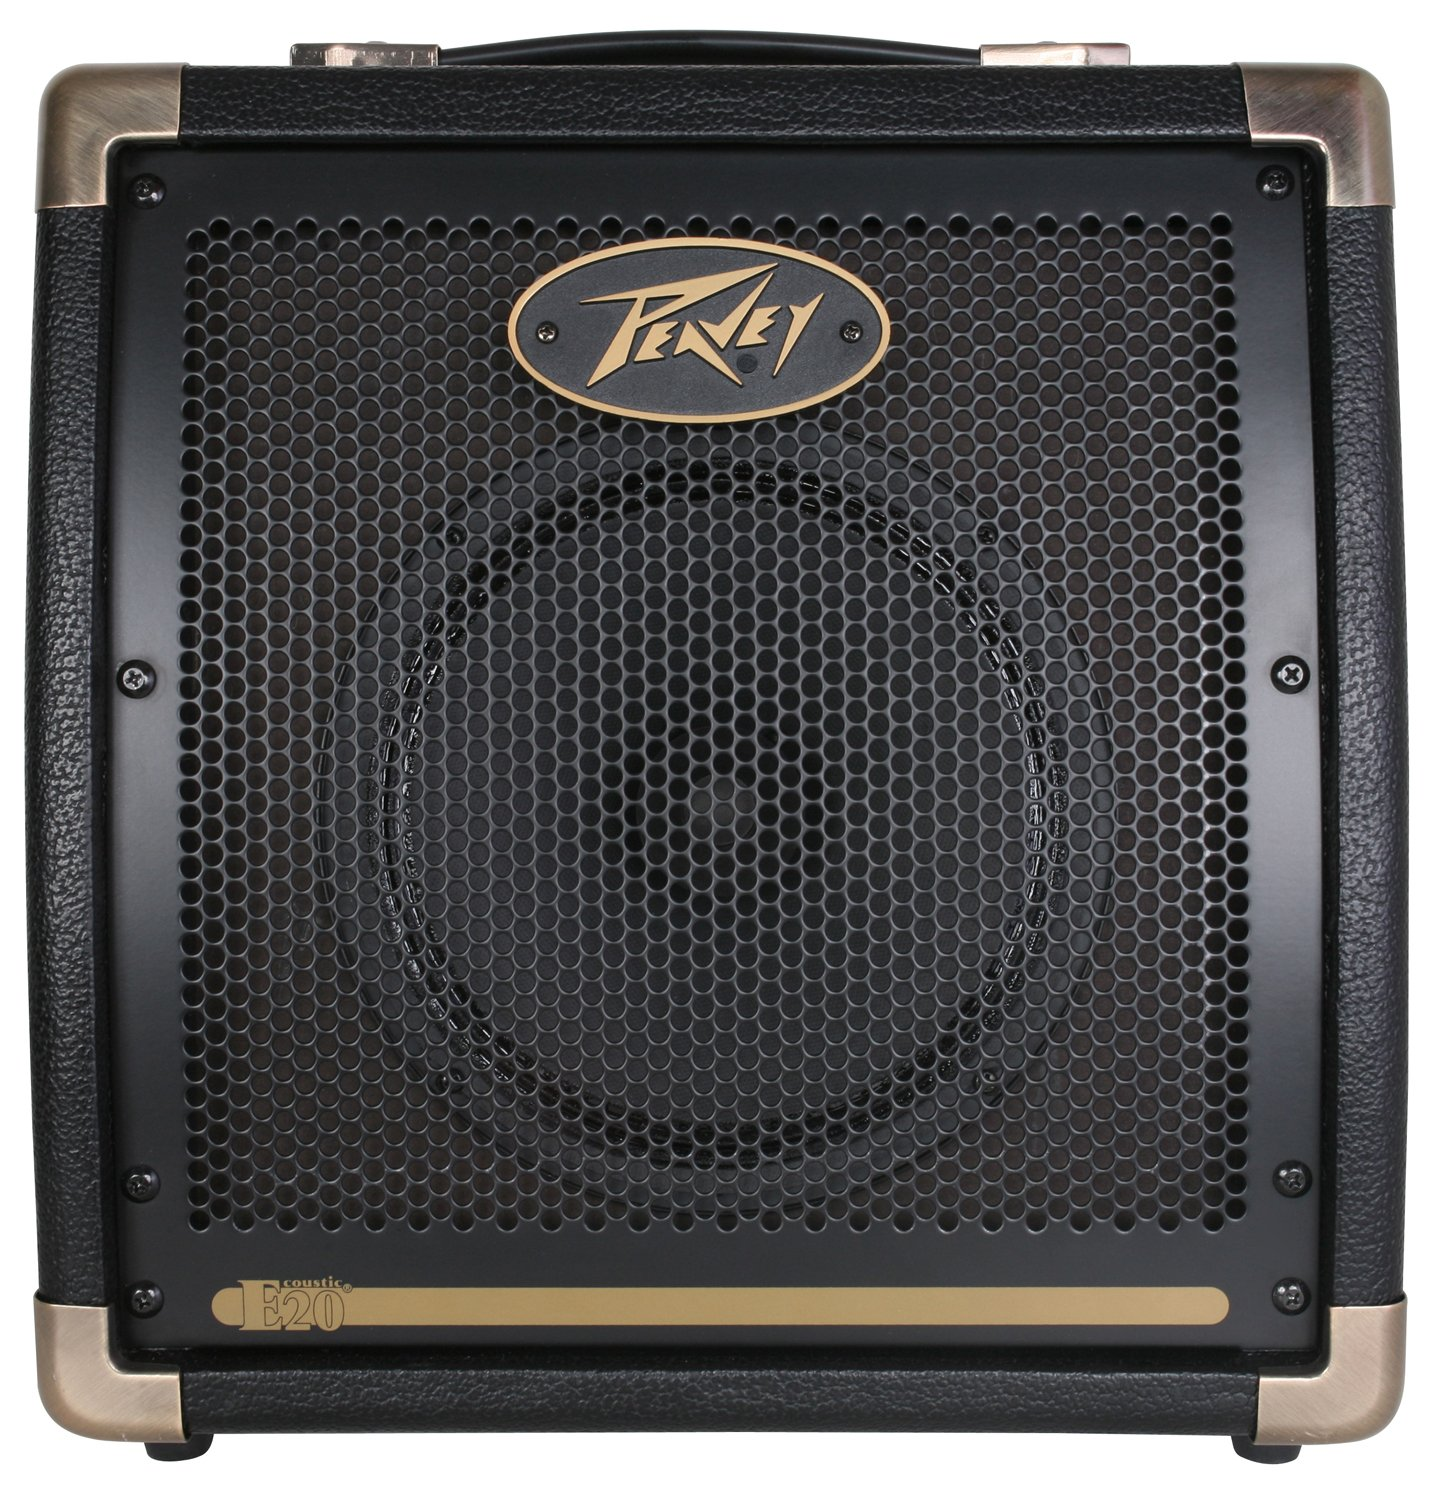 Peavey Ecoustic20 20W Acoustic Guitar Amplifier by Peavey